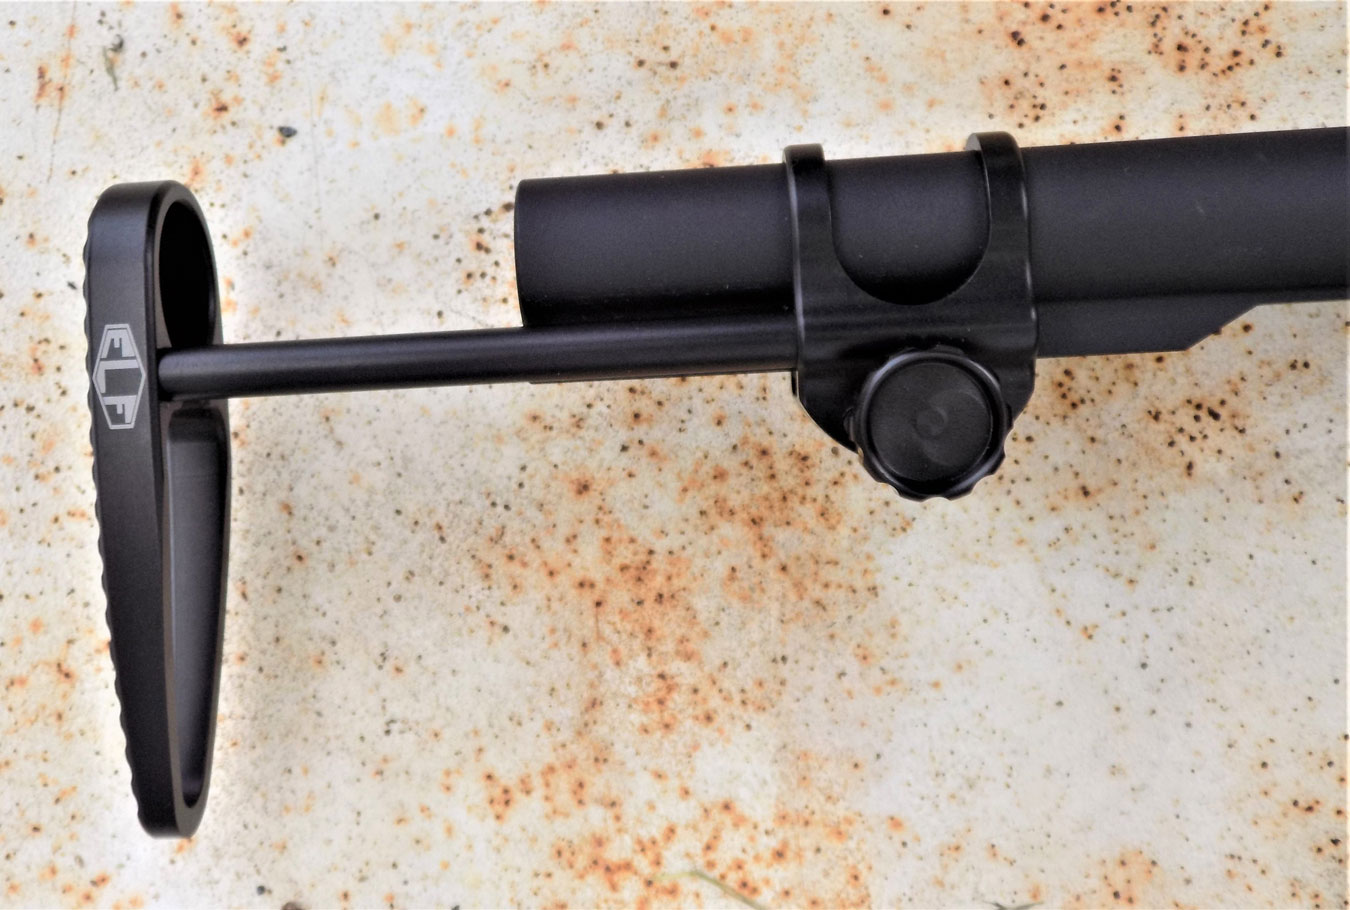 Elftmann rifle stock extended